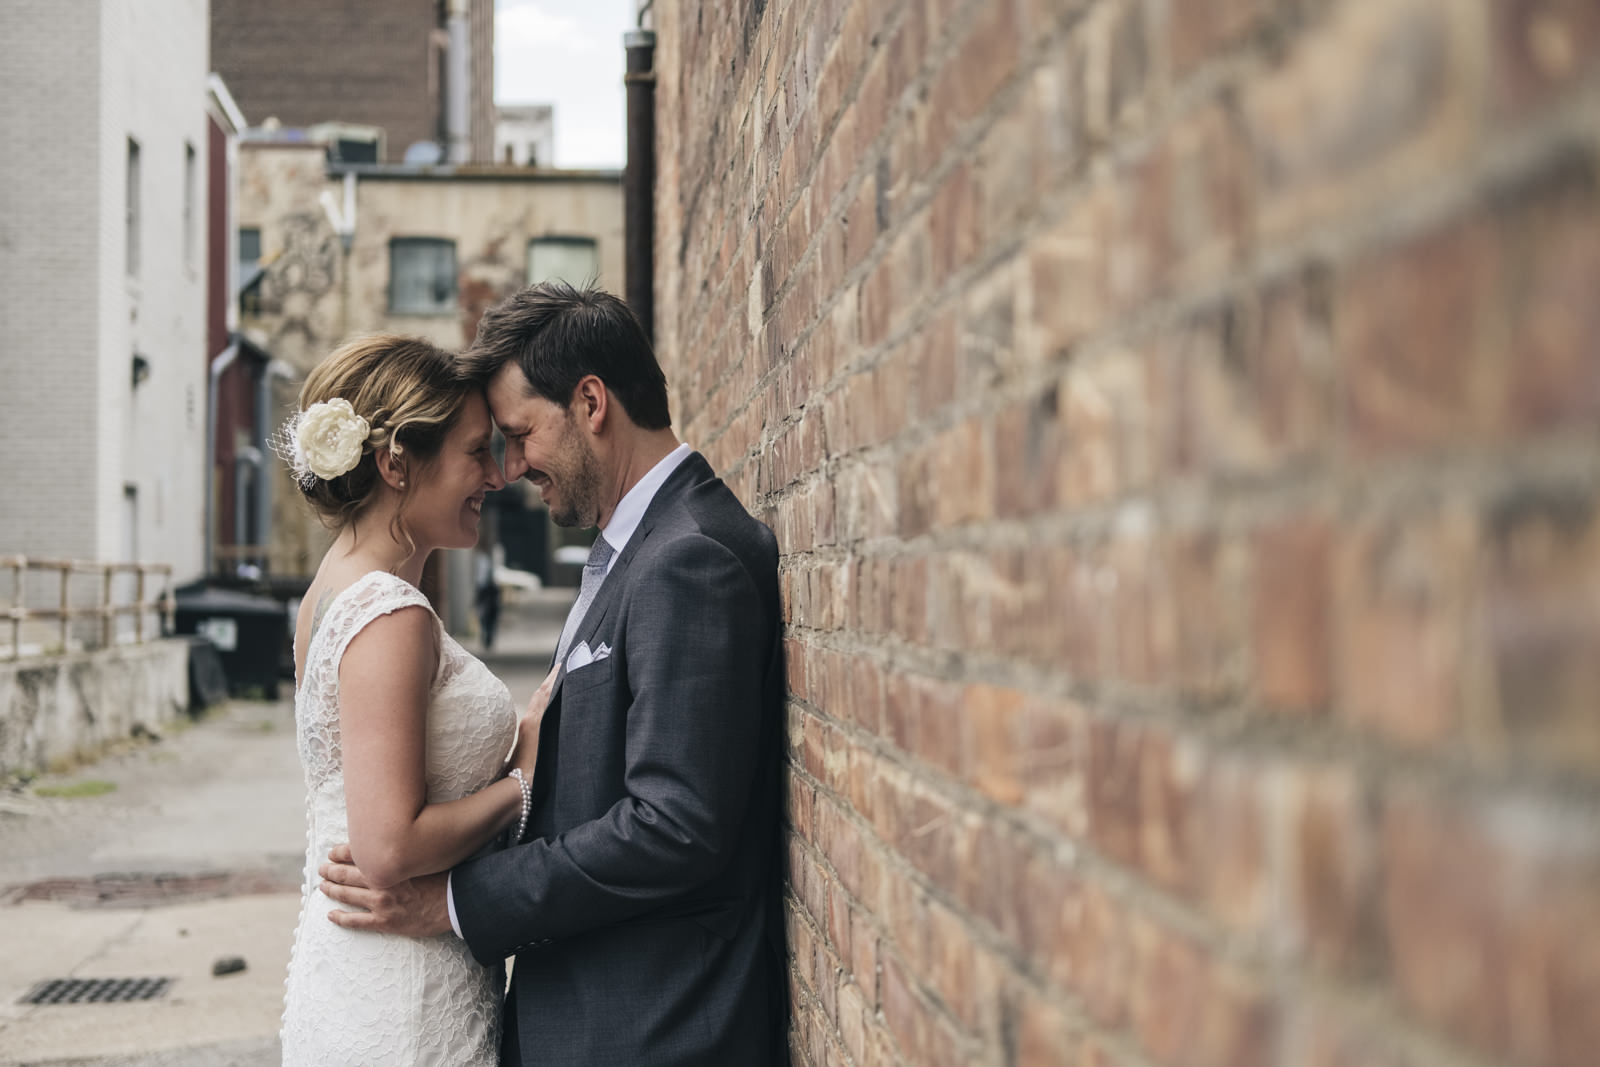 Bride and groom embrace during styled wedding session in Toledo ally.